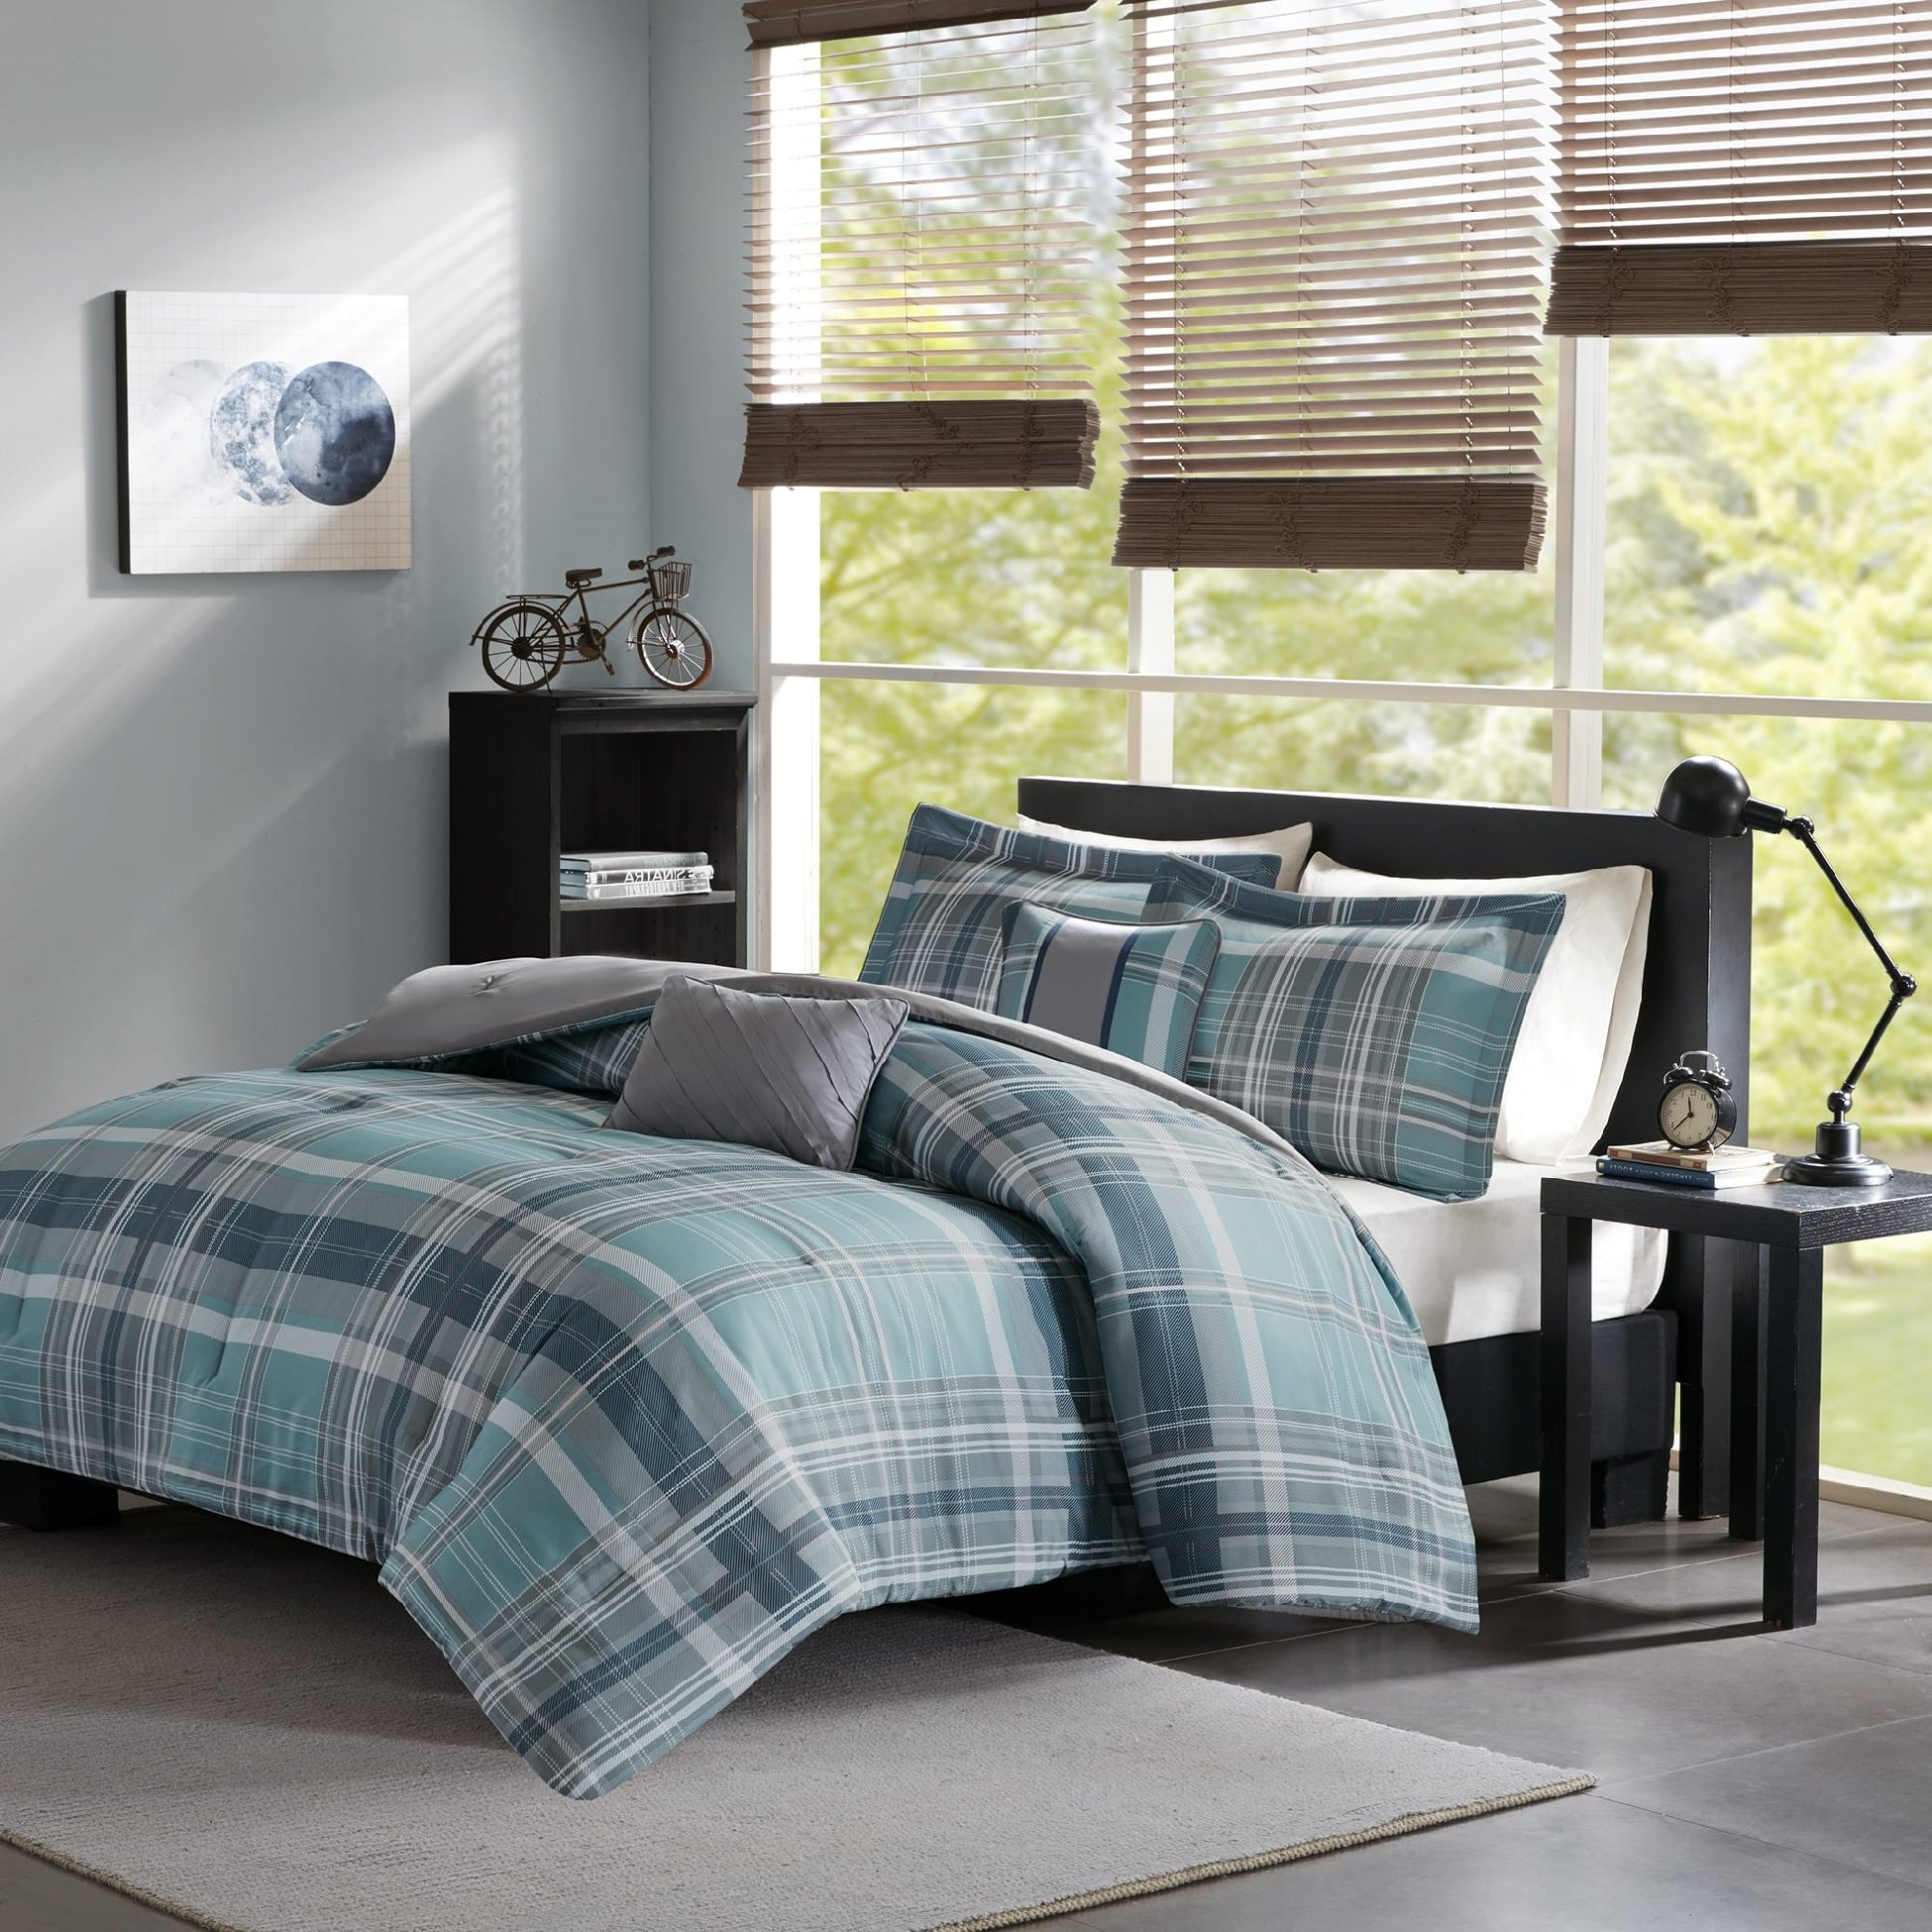 ID & DH Teen Boys Bedding Sets Kids 4 Piece Comforter Set Aqua Blue Gray Plaid Perfect for Home or Dorm Room Bundle Includes Bonus Pocket Flashlight form Switchback Outdoor Gear (Twin/Twin XL)